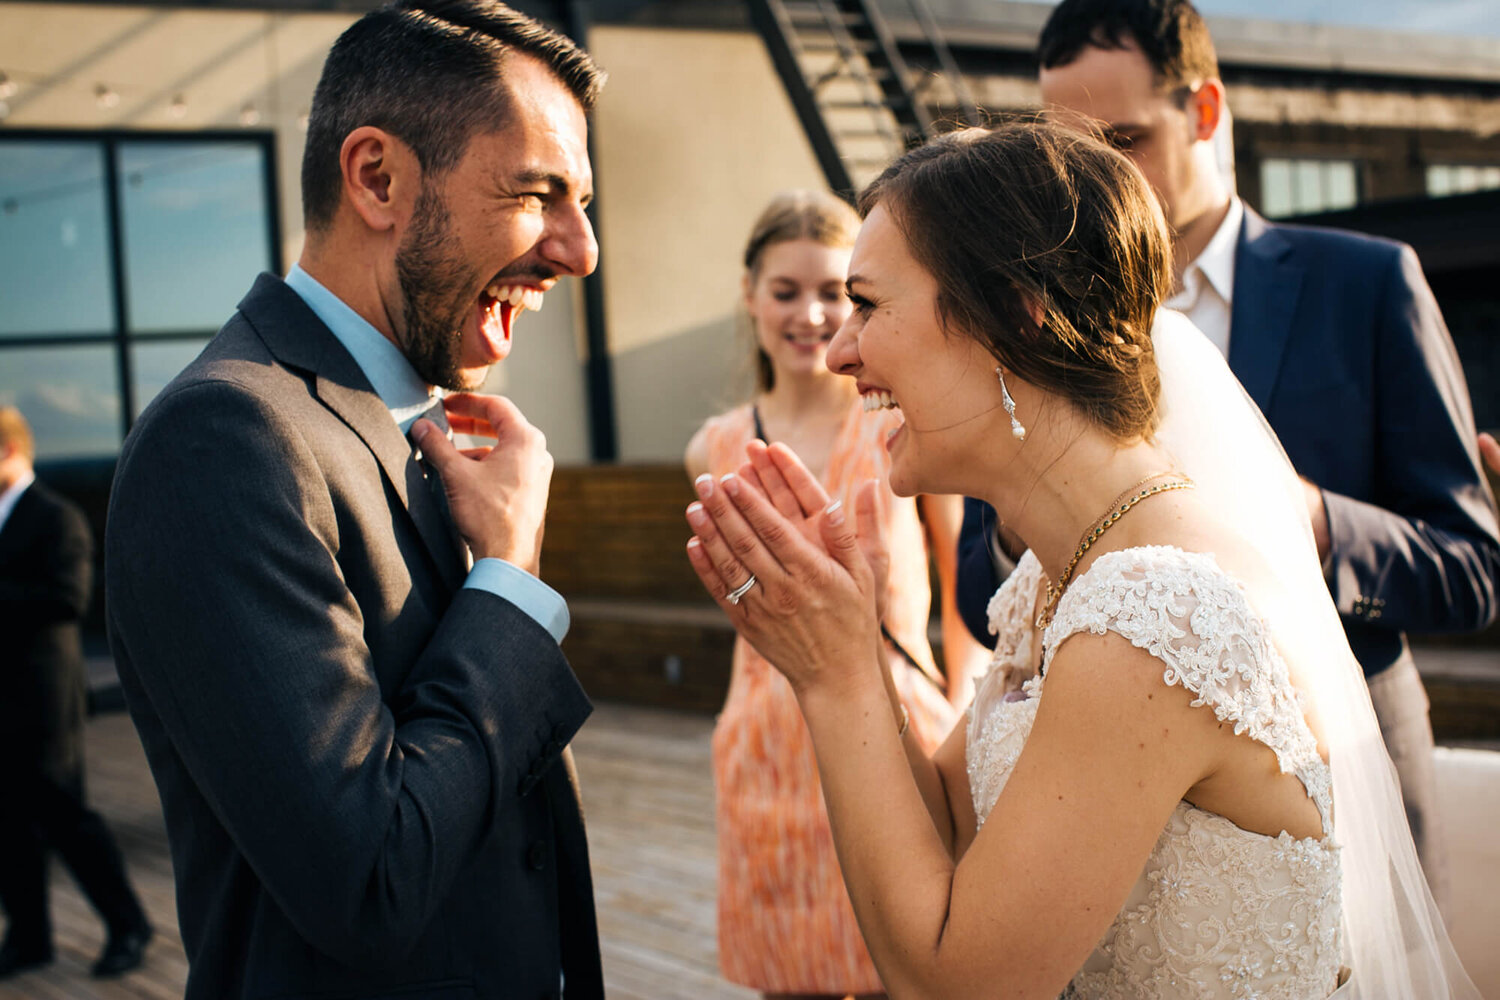 19-bissingers-chocolate-factory-st-louis-mo-wedding-patio-bride-laughing.jpg